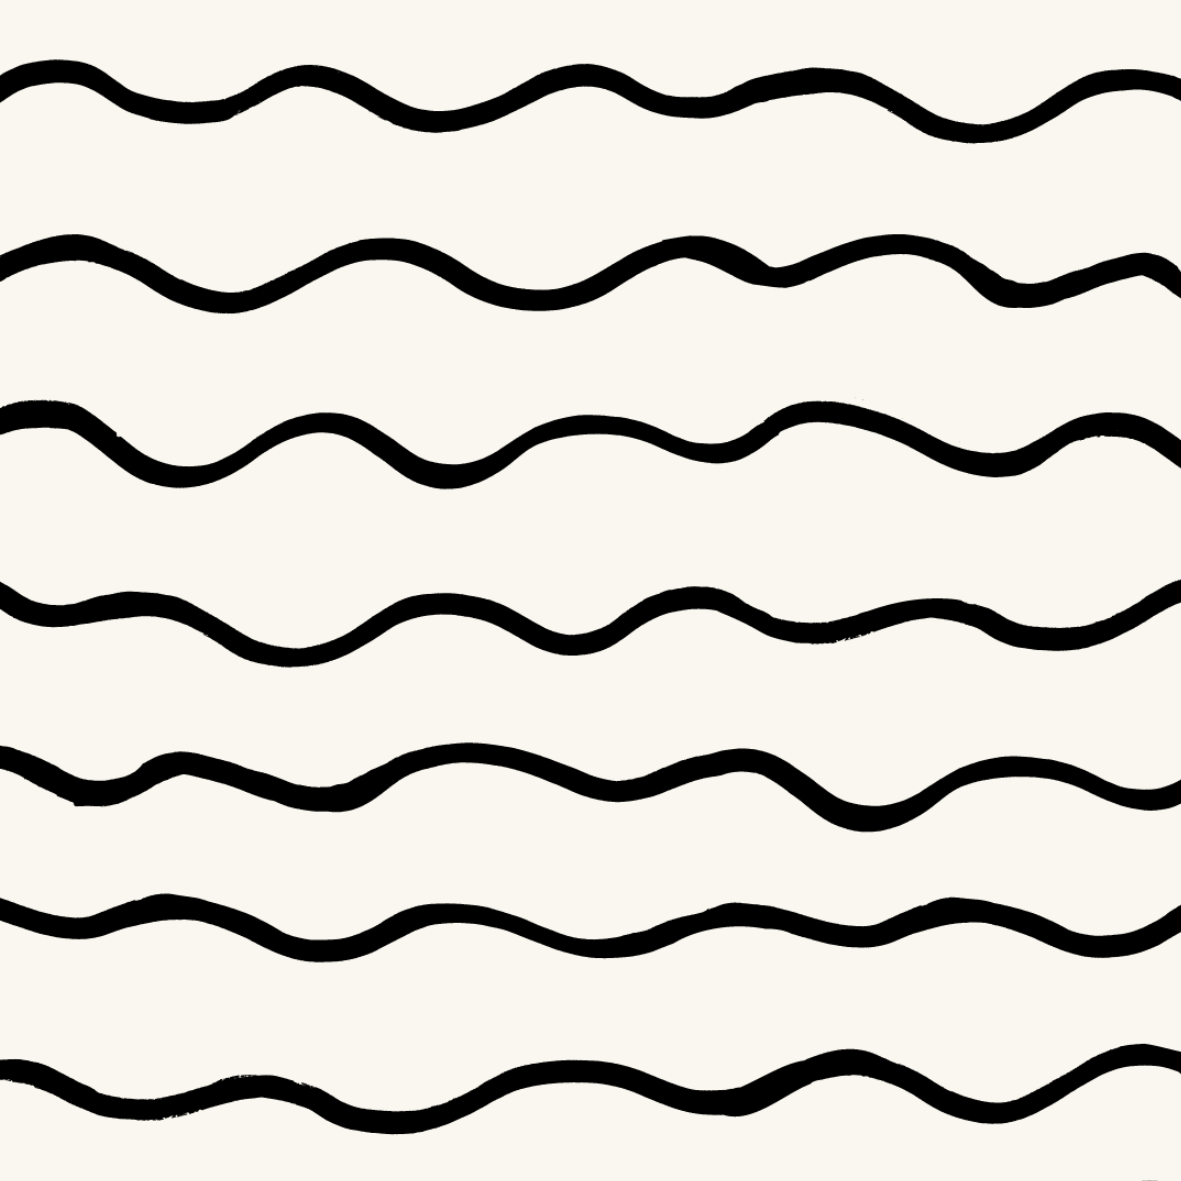 melissa boardman waves pattern abstract.png